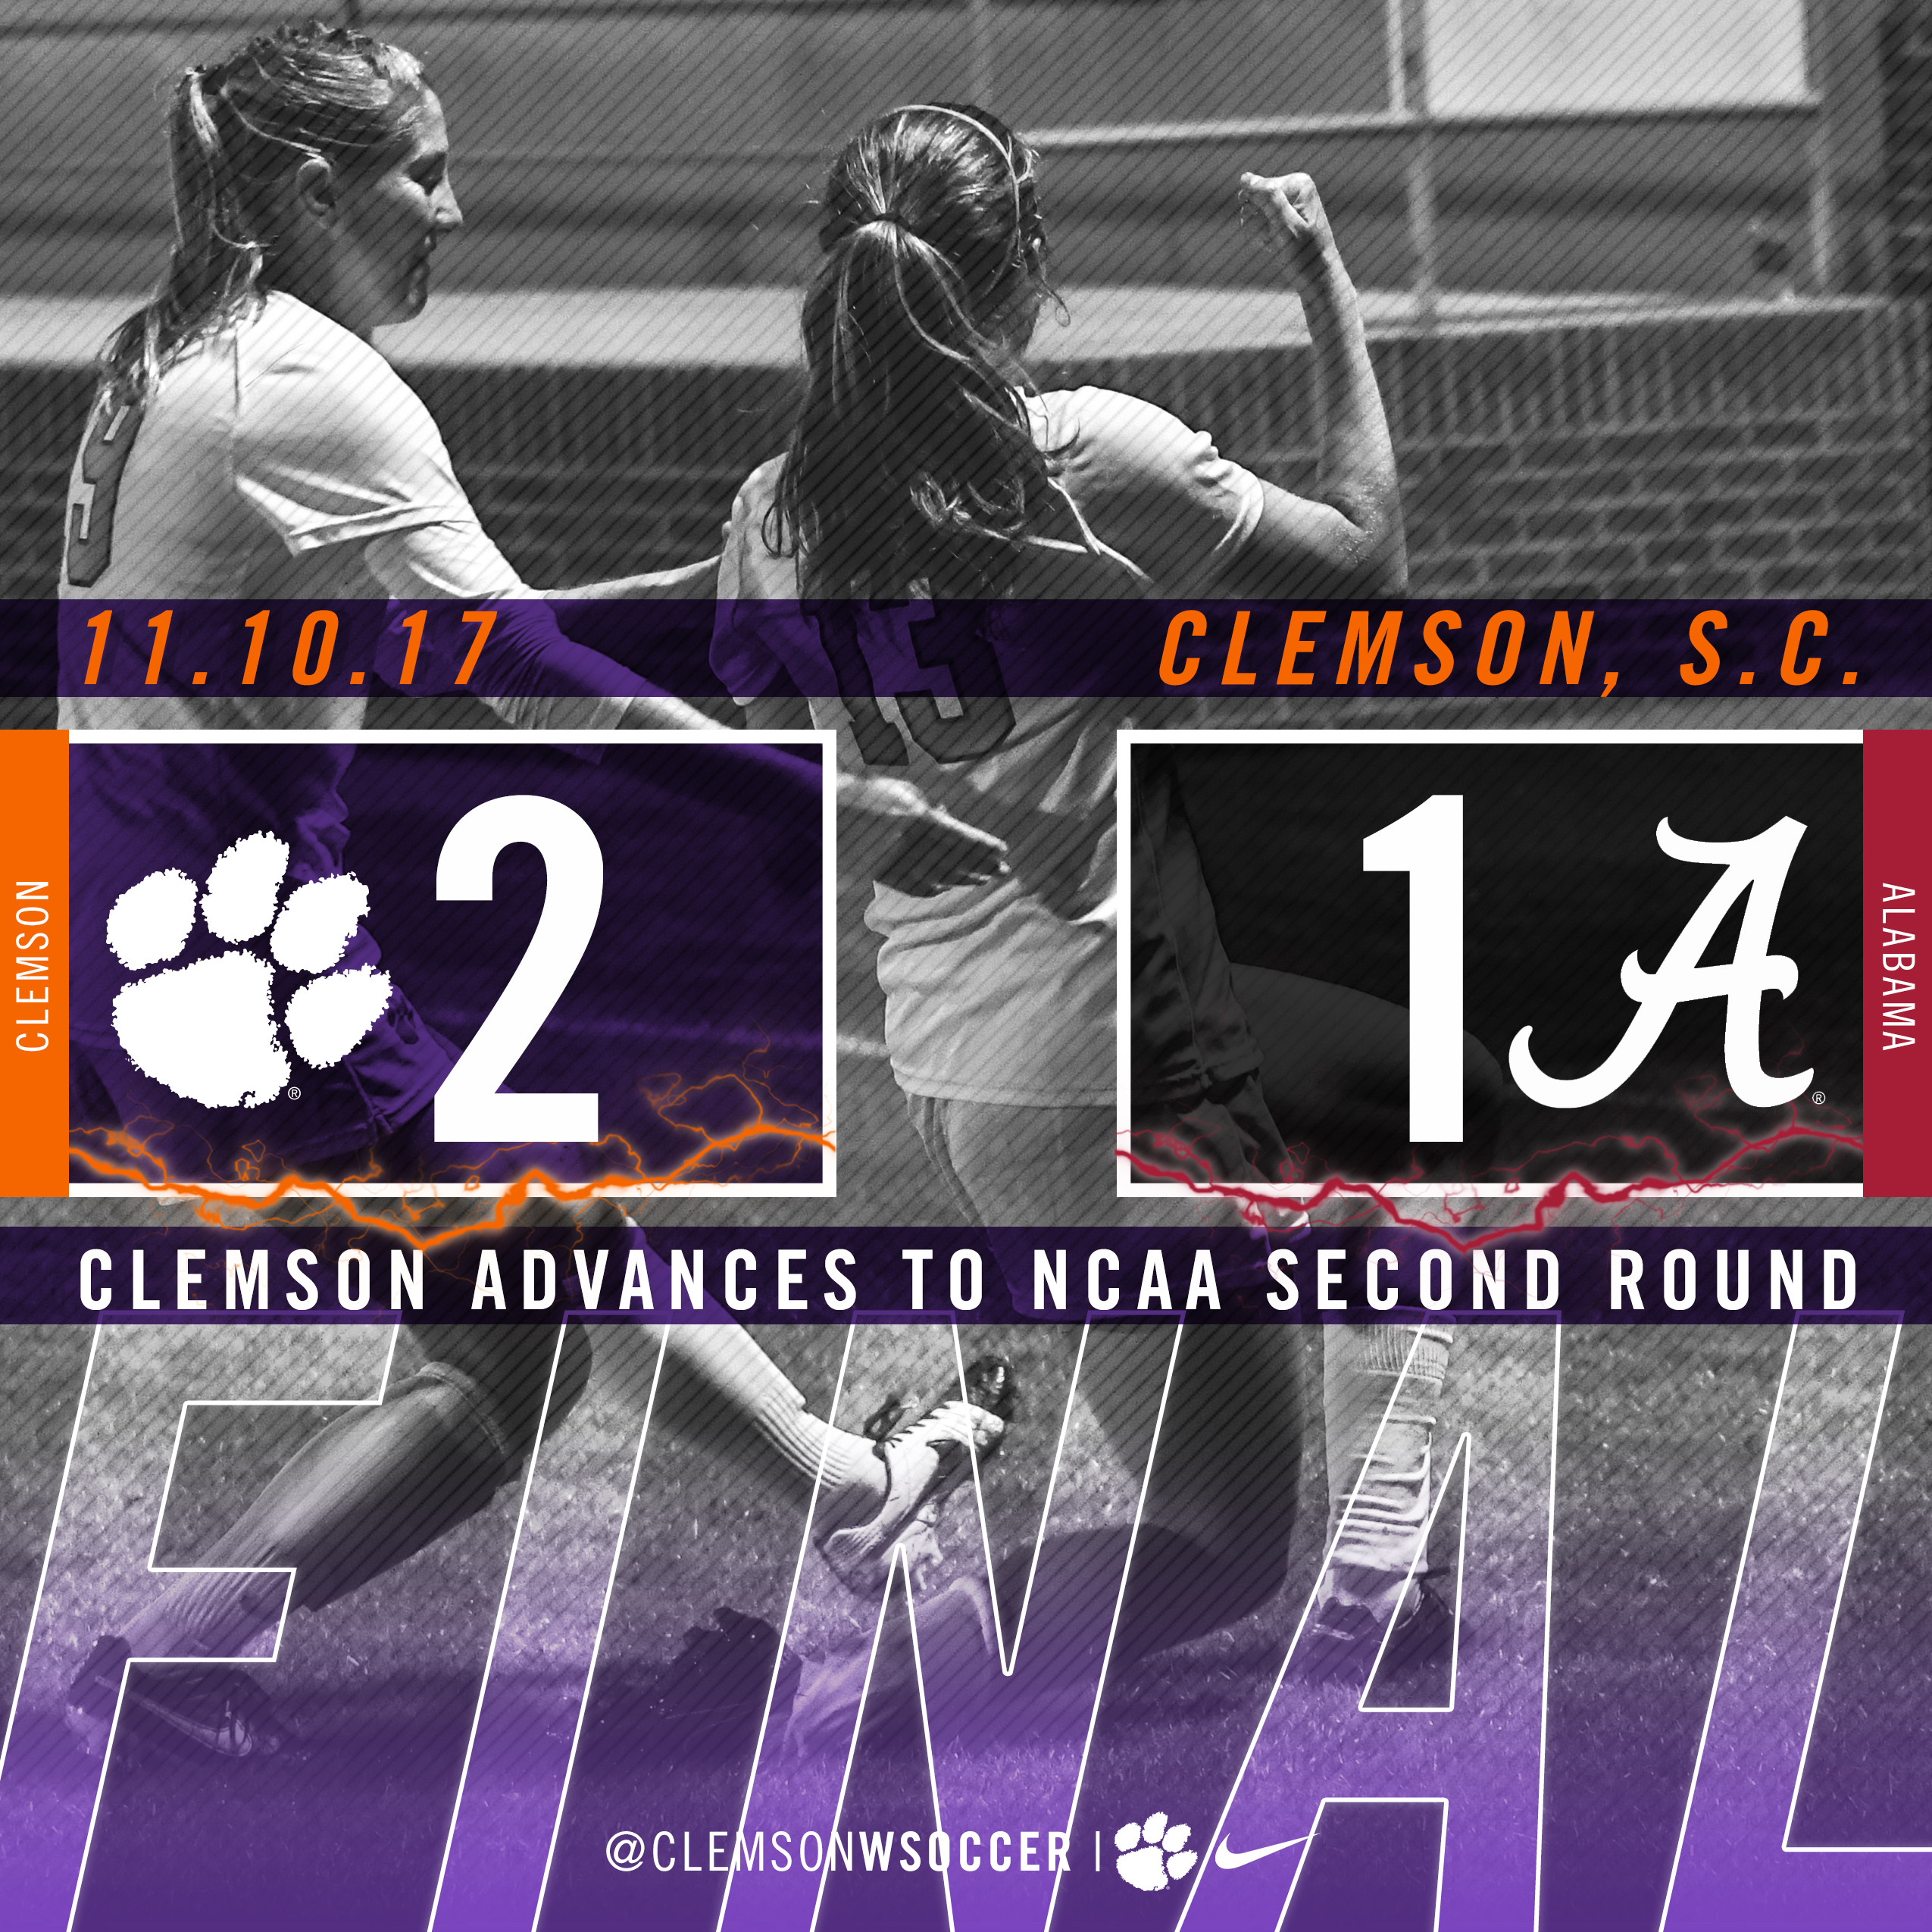 Second Half Spurt Lifts Tigers to NCAA First Round Win Over Alabama Friday